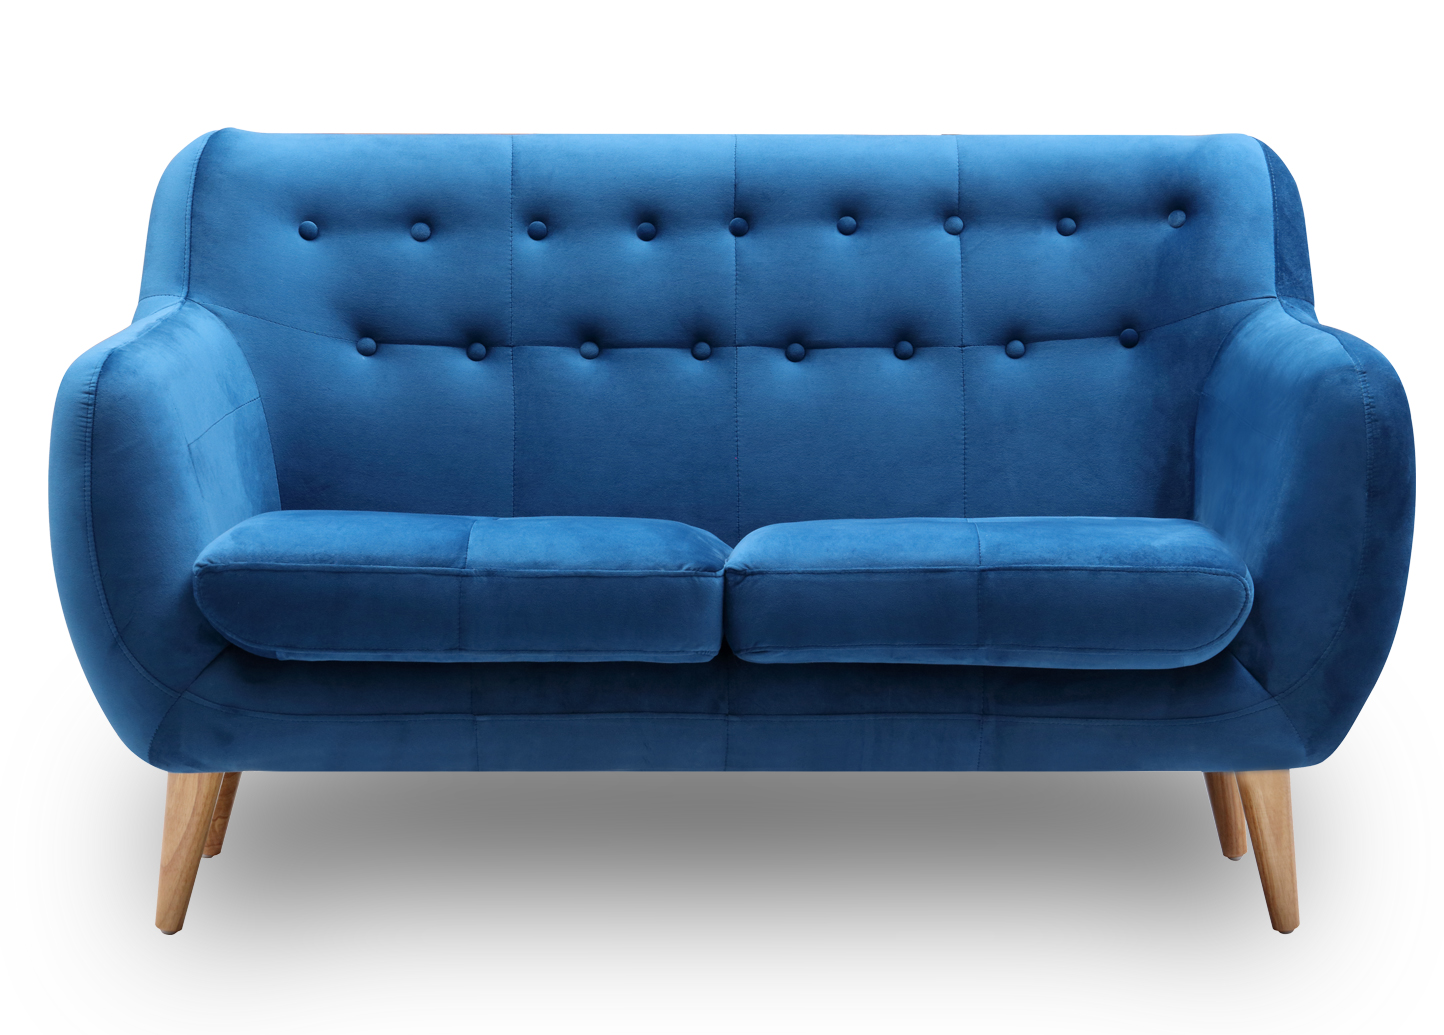 2 Seater Velvet Sofa in blue with buttons scandinavian style